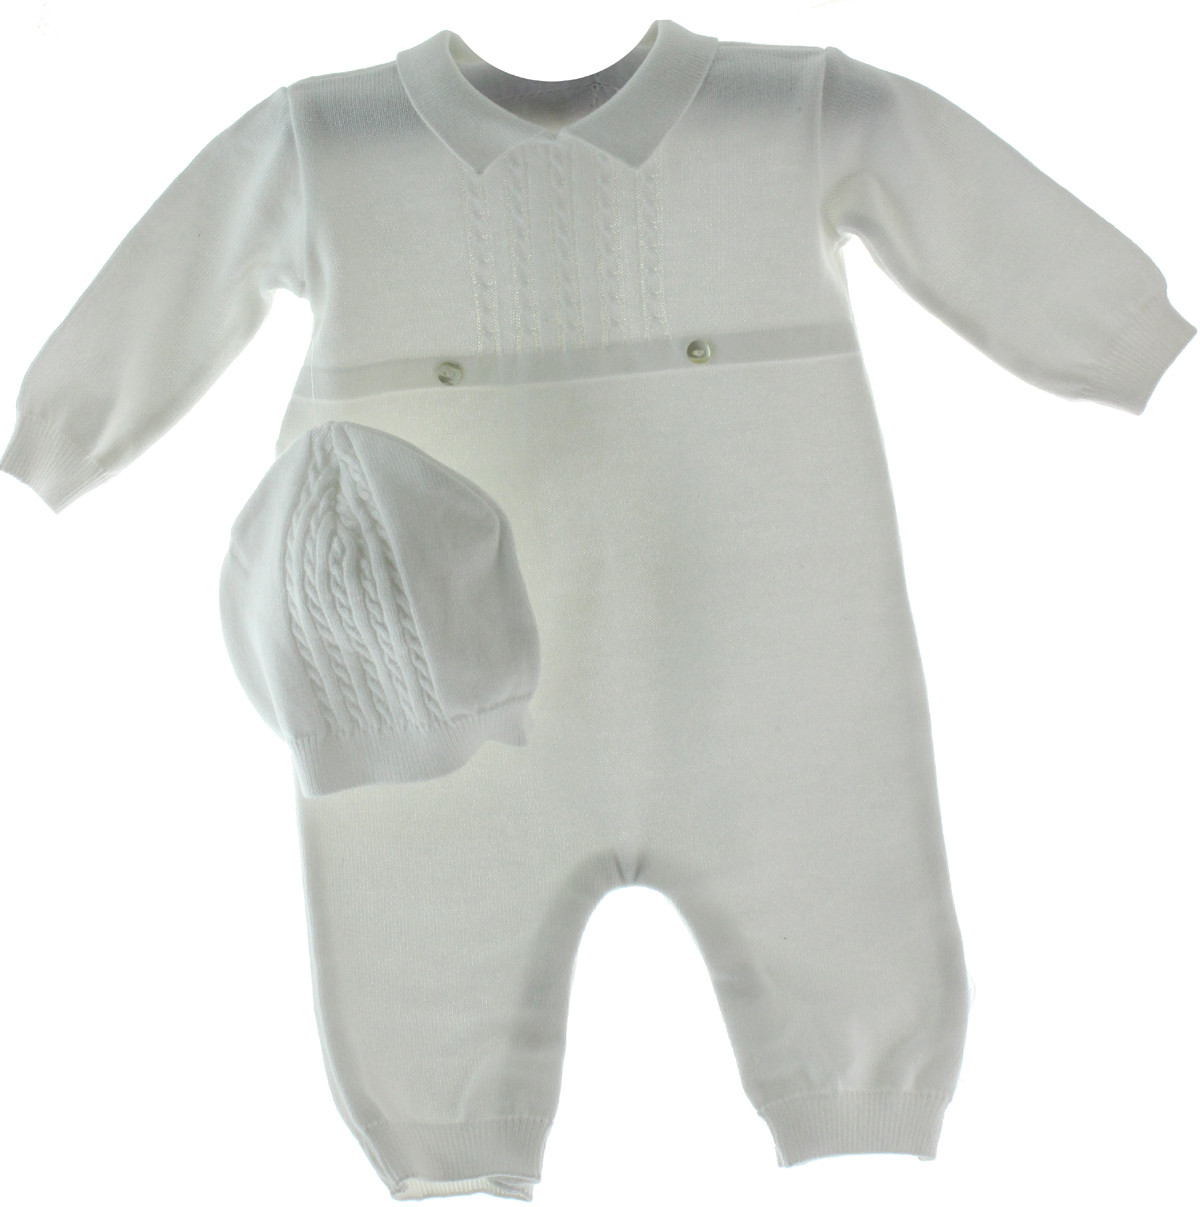 c6be00946c9f Feltman Brothers Infant Boys White Knit Take Home Outfit   Hat Set ...